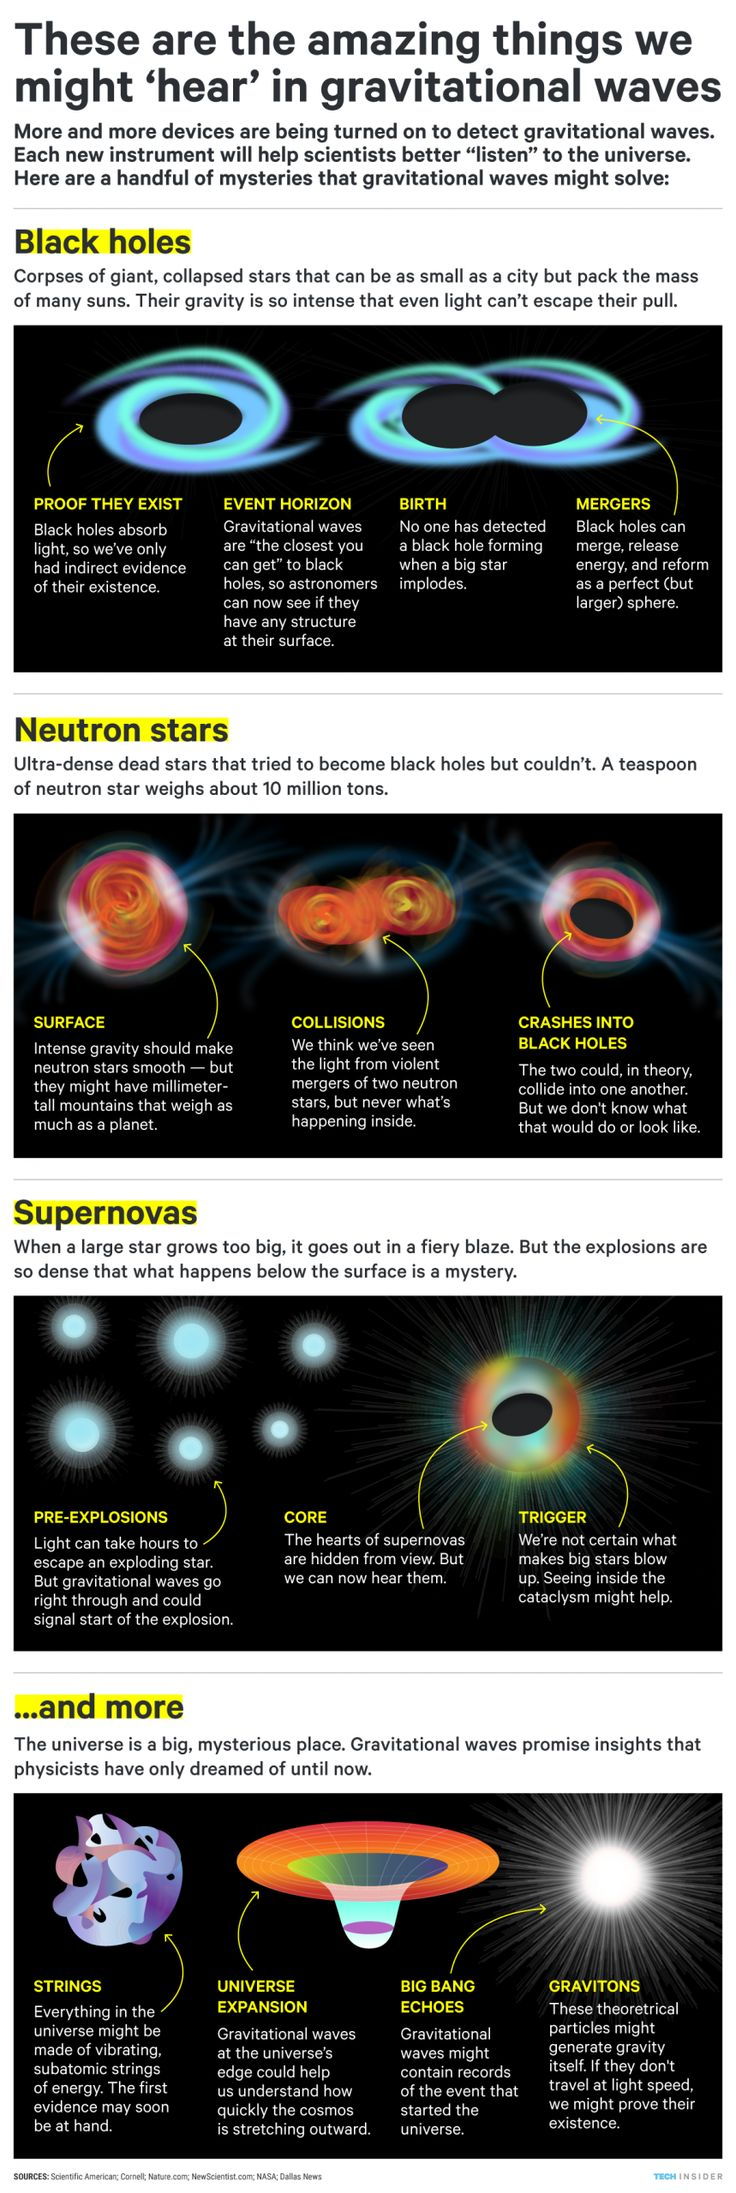 A huge advance in physics could help solve these mysteries of the universe